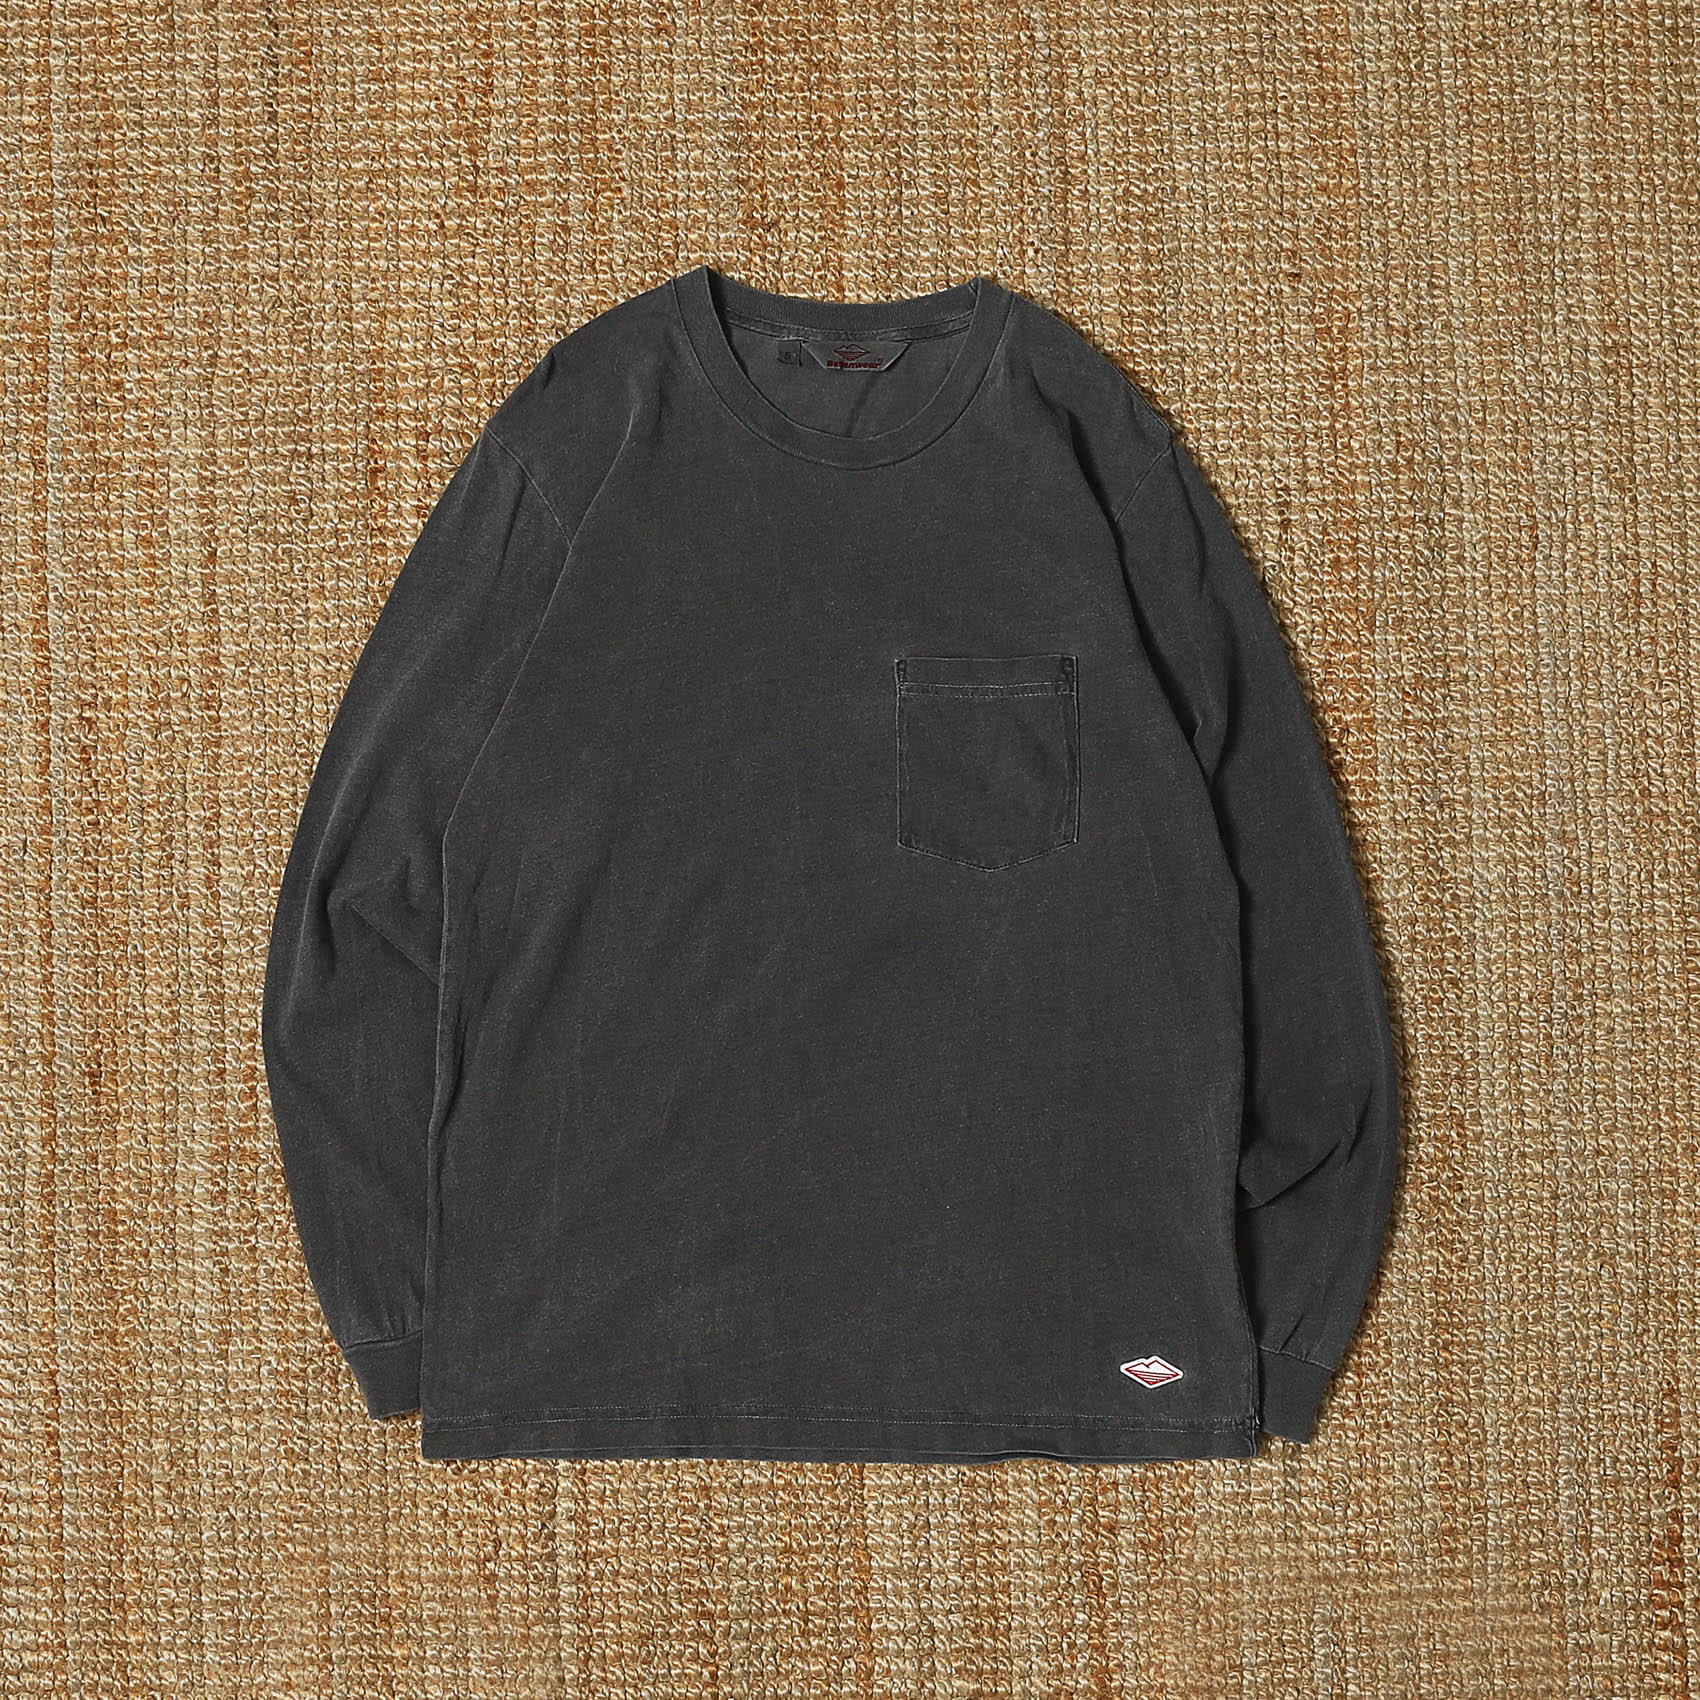 BATTENWEAR L/S POCKET TEE - GRAY